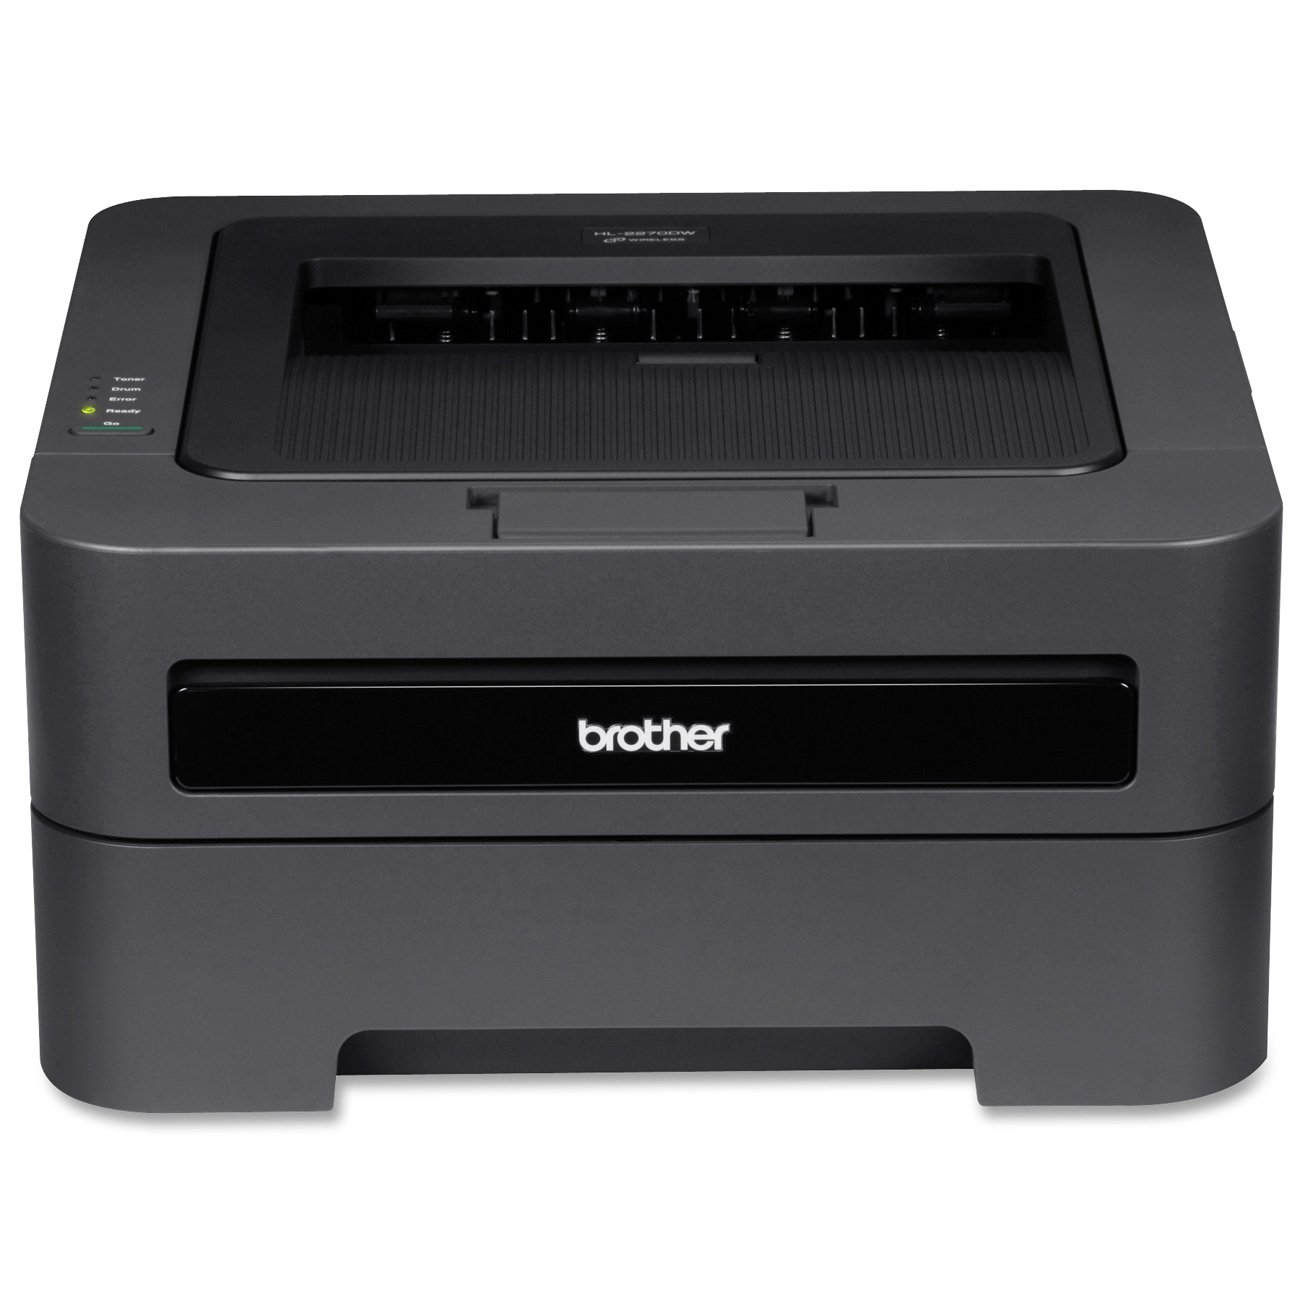 Brother HL-2270DW Compact Laser Printer with Wireless Networking and Duplex $77.99